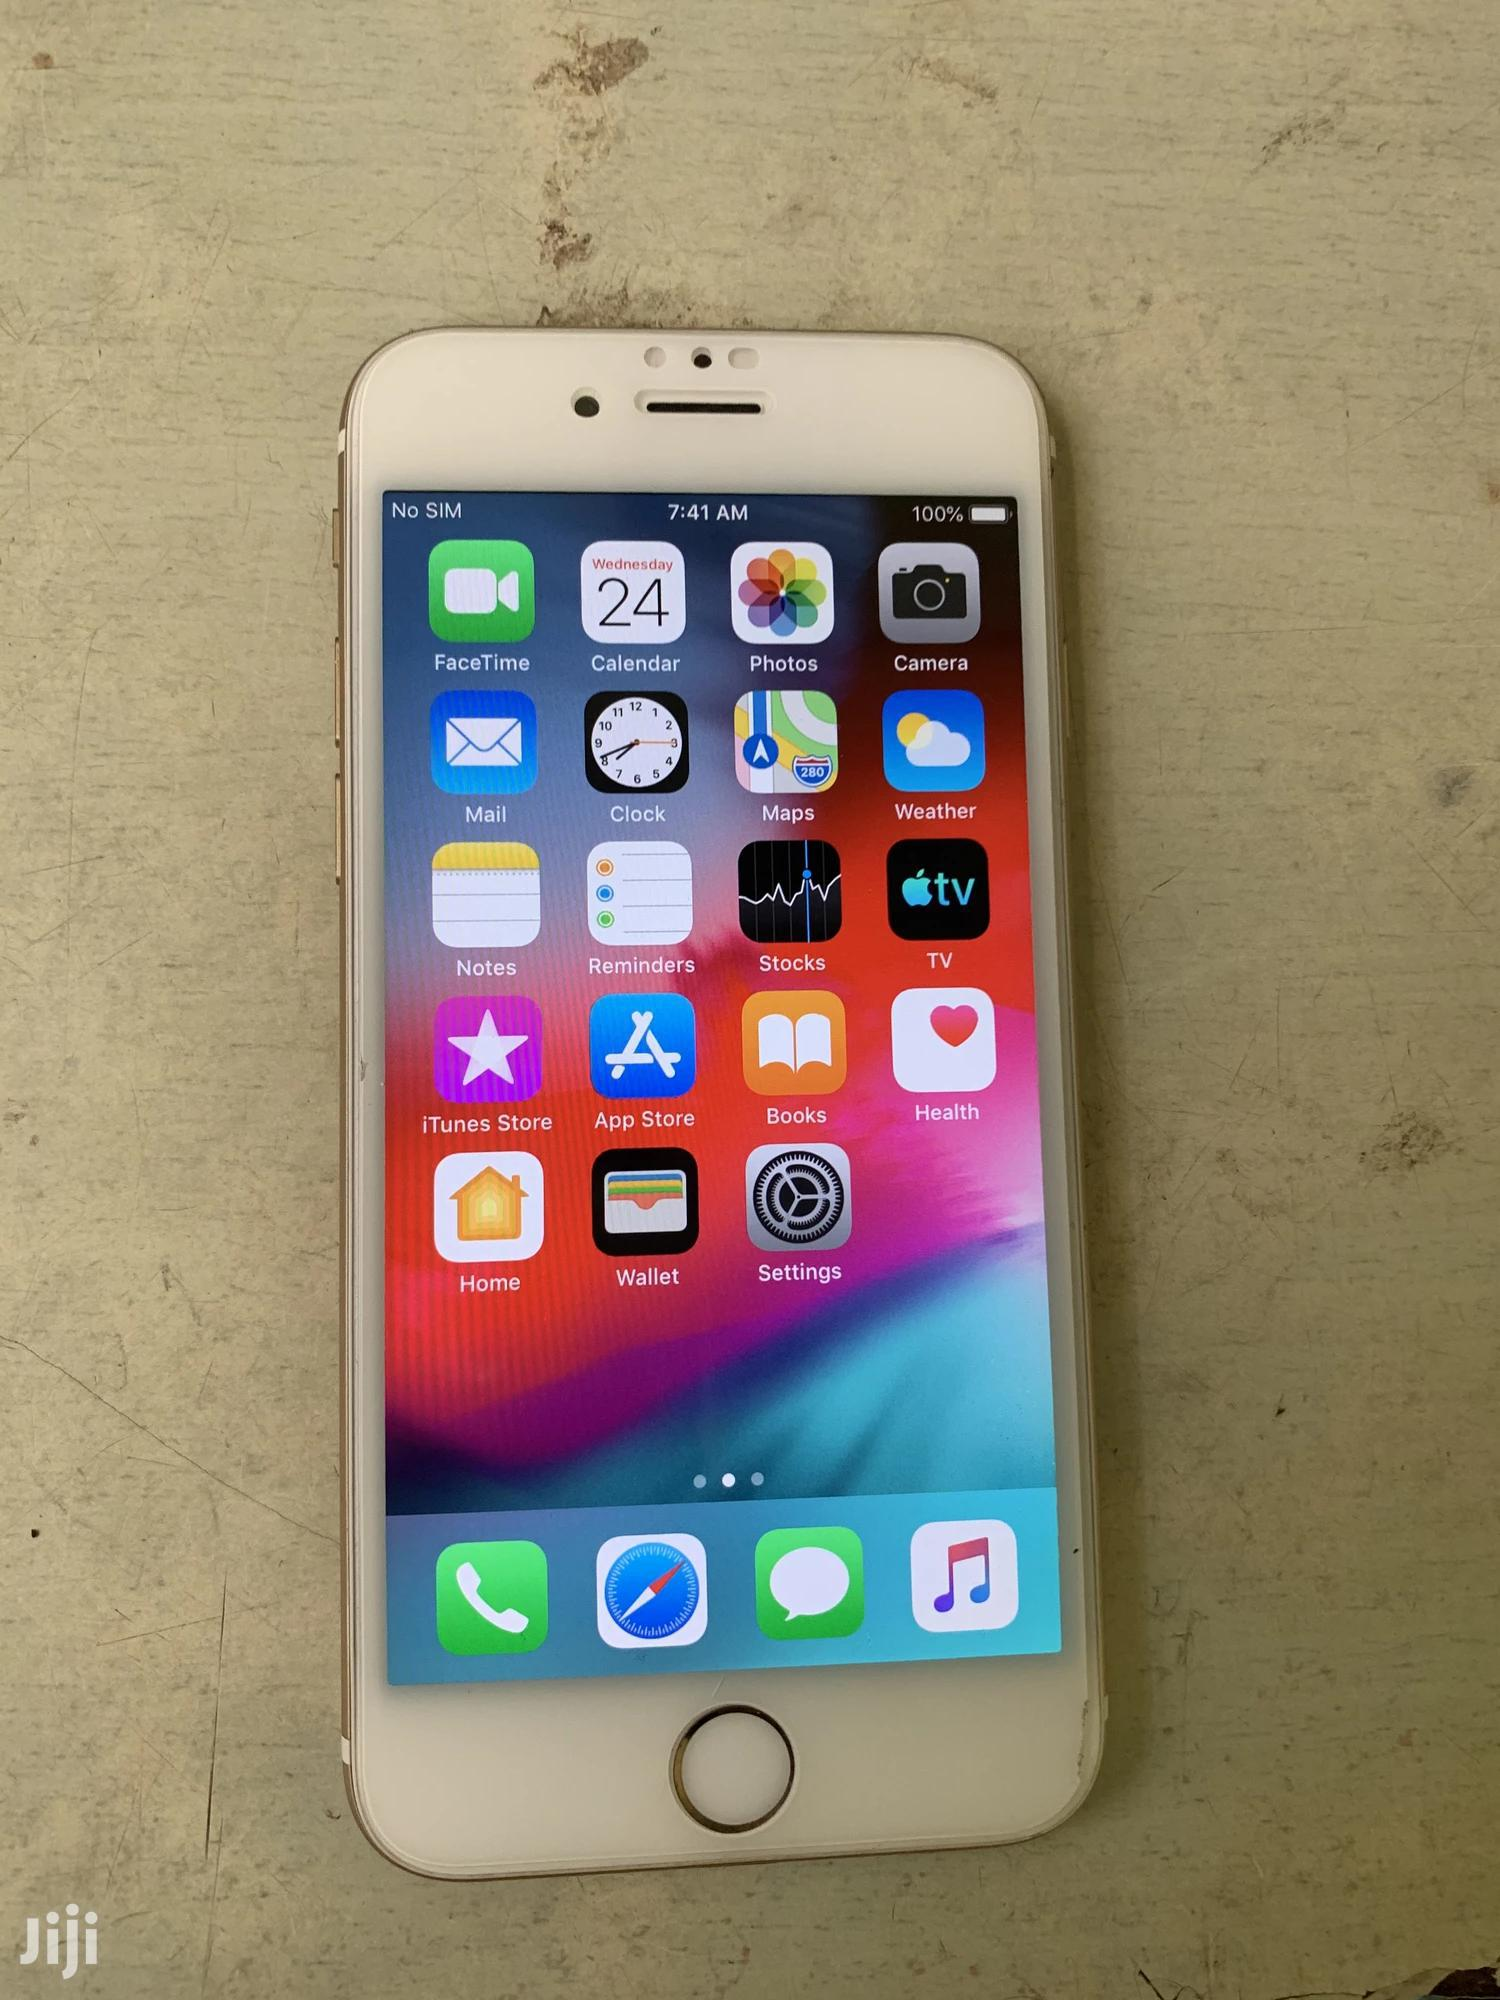 Apple iPhone 6 16 GB Gold | Mobile Phones for sale in Odorkor, Greater Accra, Ghana